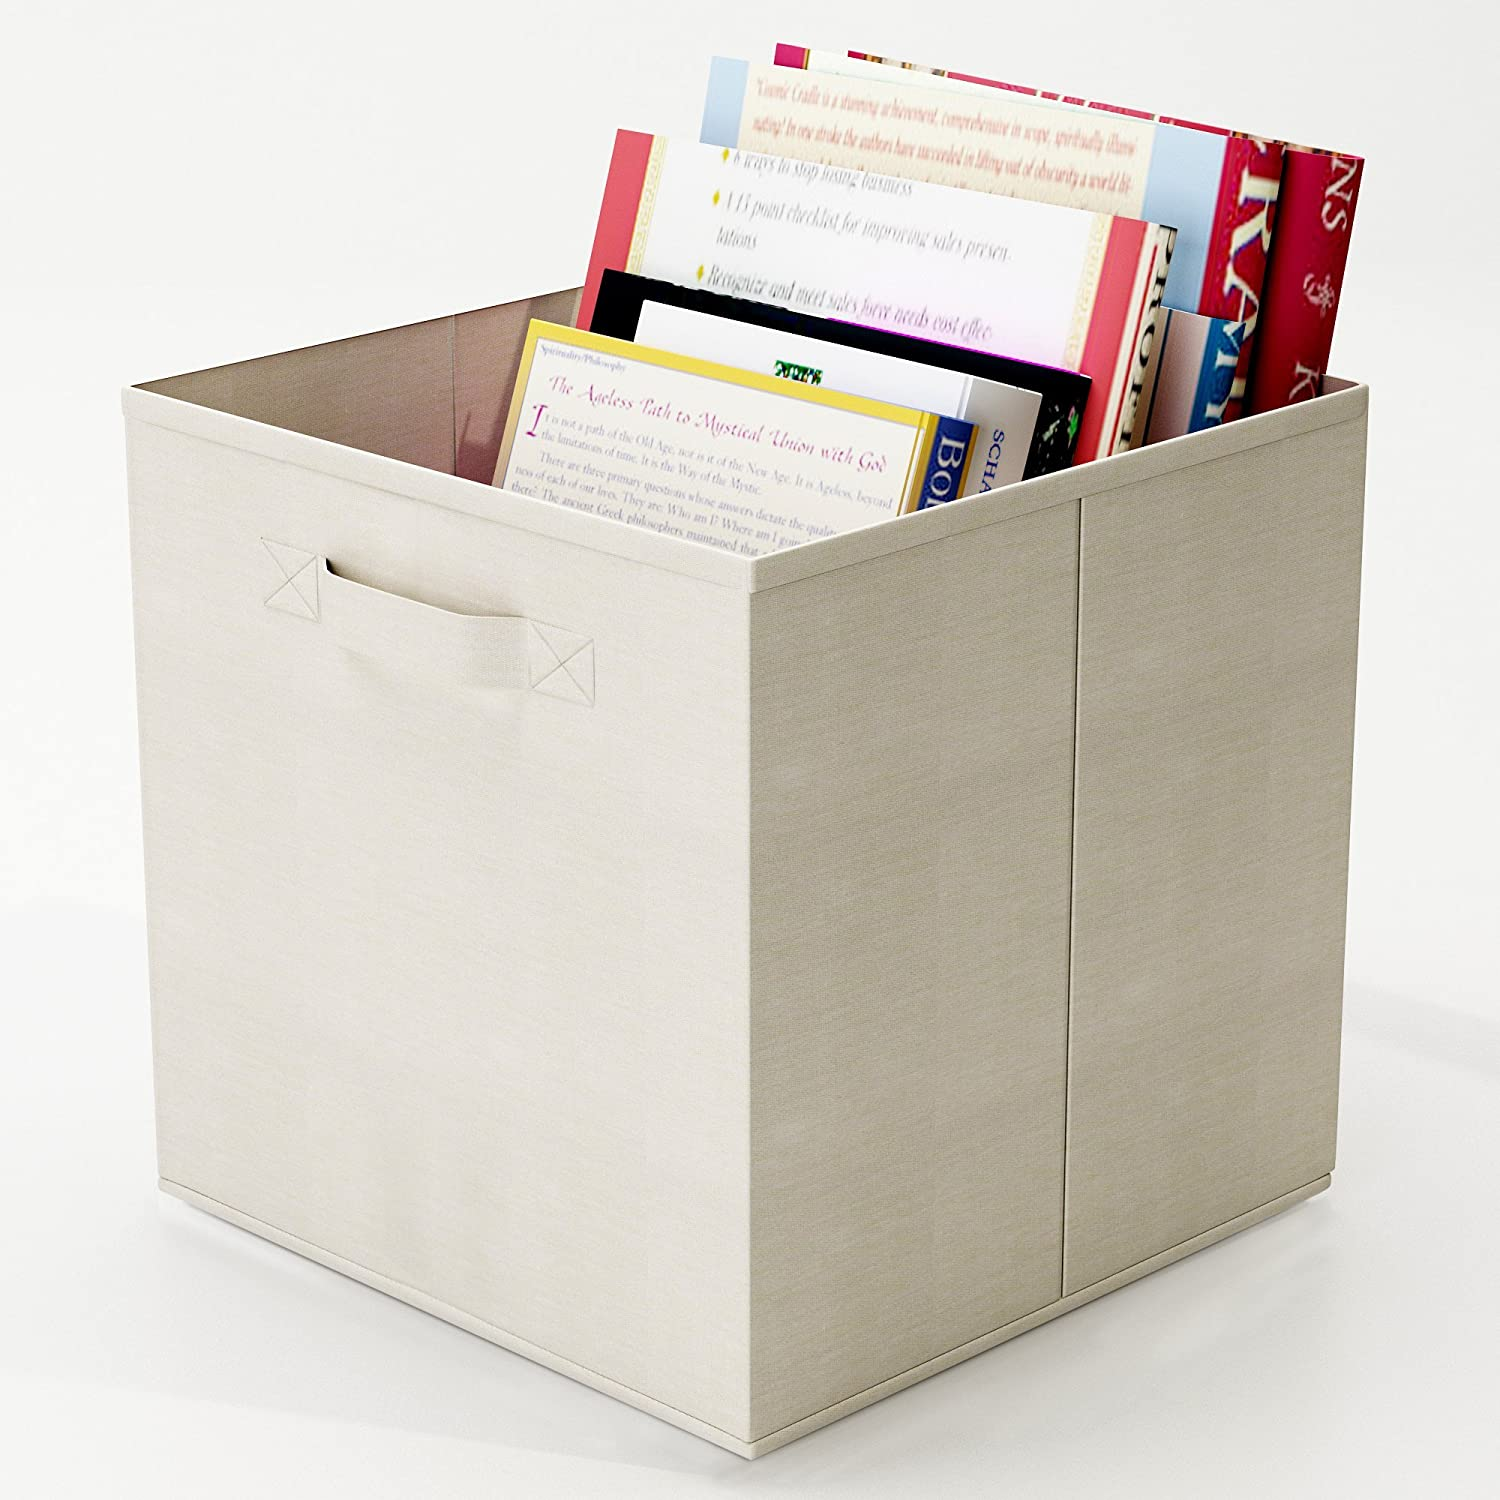 Amazon.com   Closet Organizer   Fabric Storage Basket Cubes Bins   6 Beige  Cubeicals Containers Drawers By Home Complete